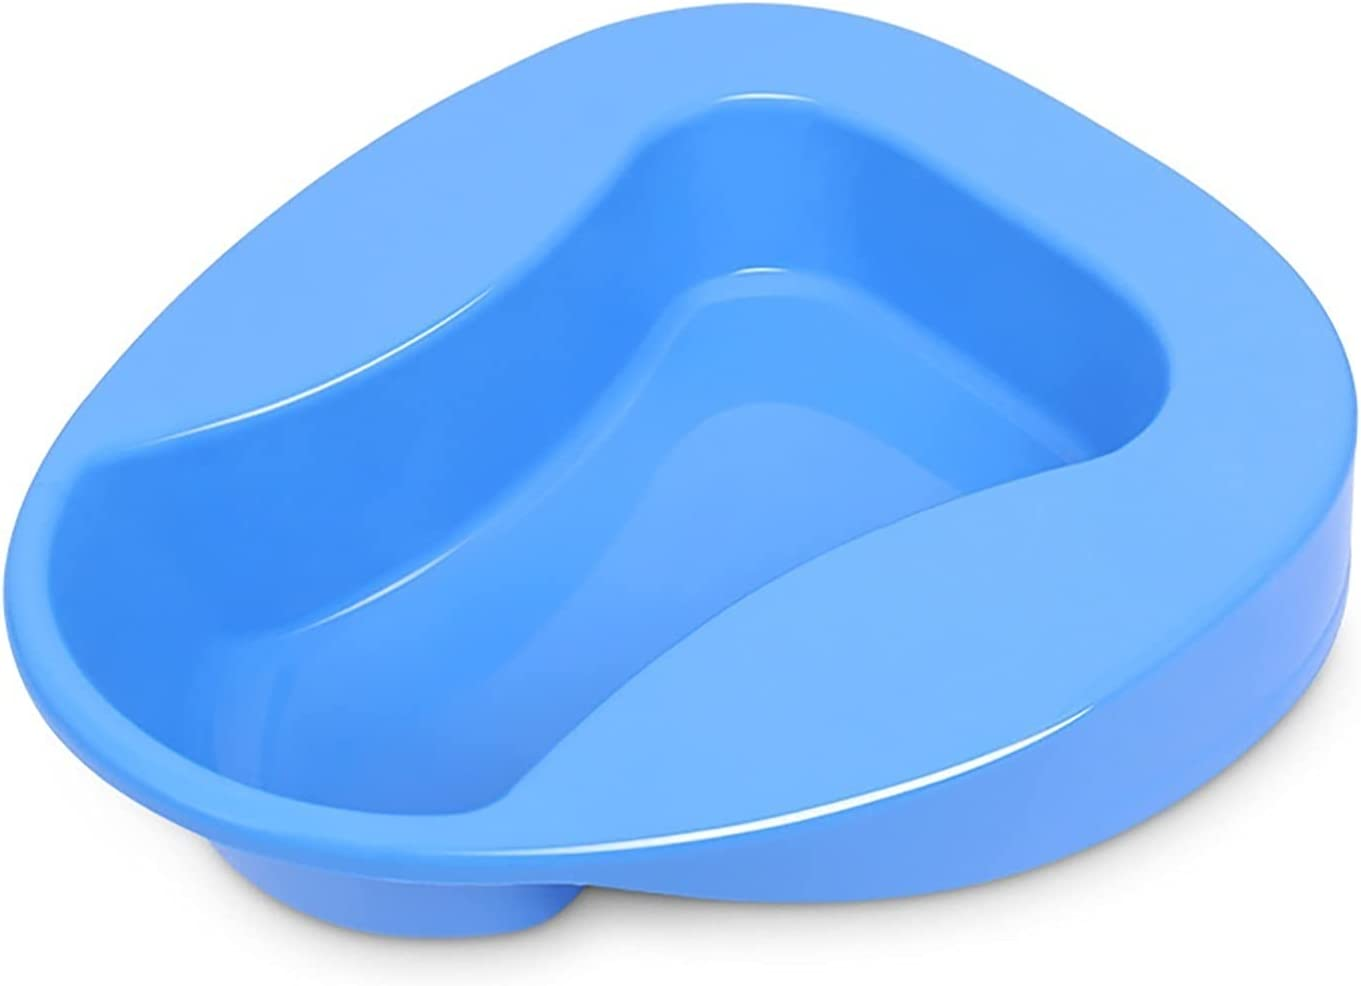 Bedpan,Potty Extra Large discharge sale Thick Trust And Potty Stable Dura Sturdy